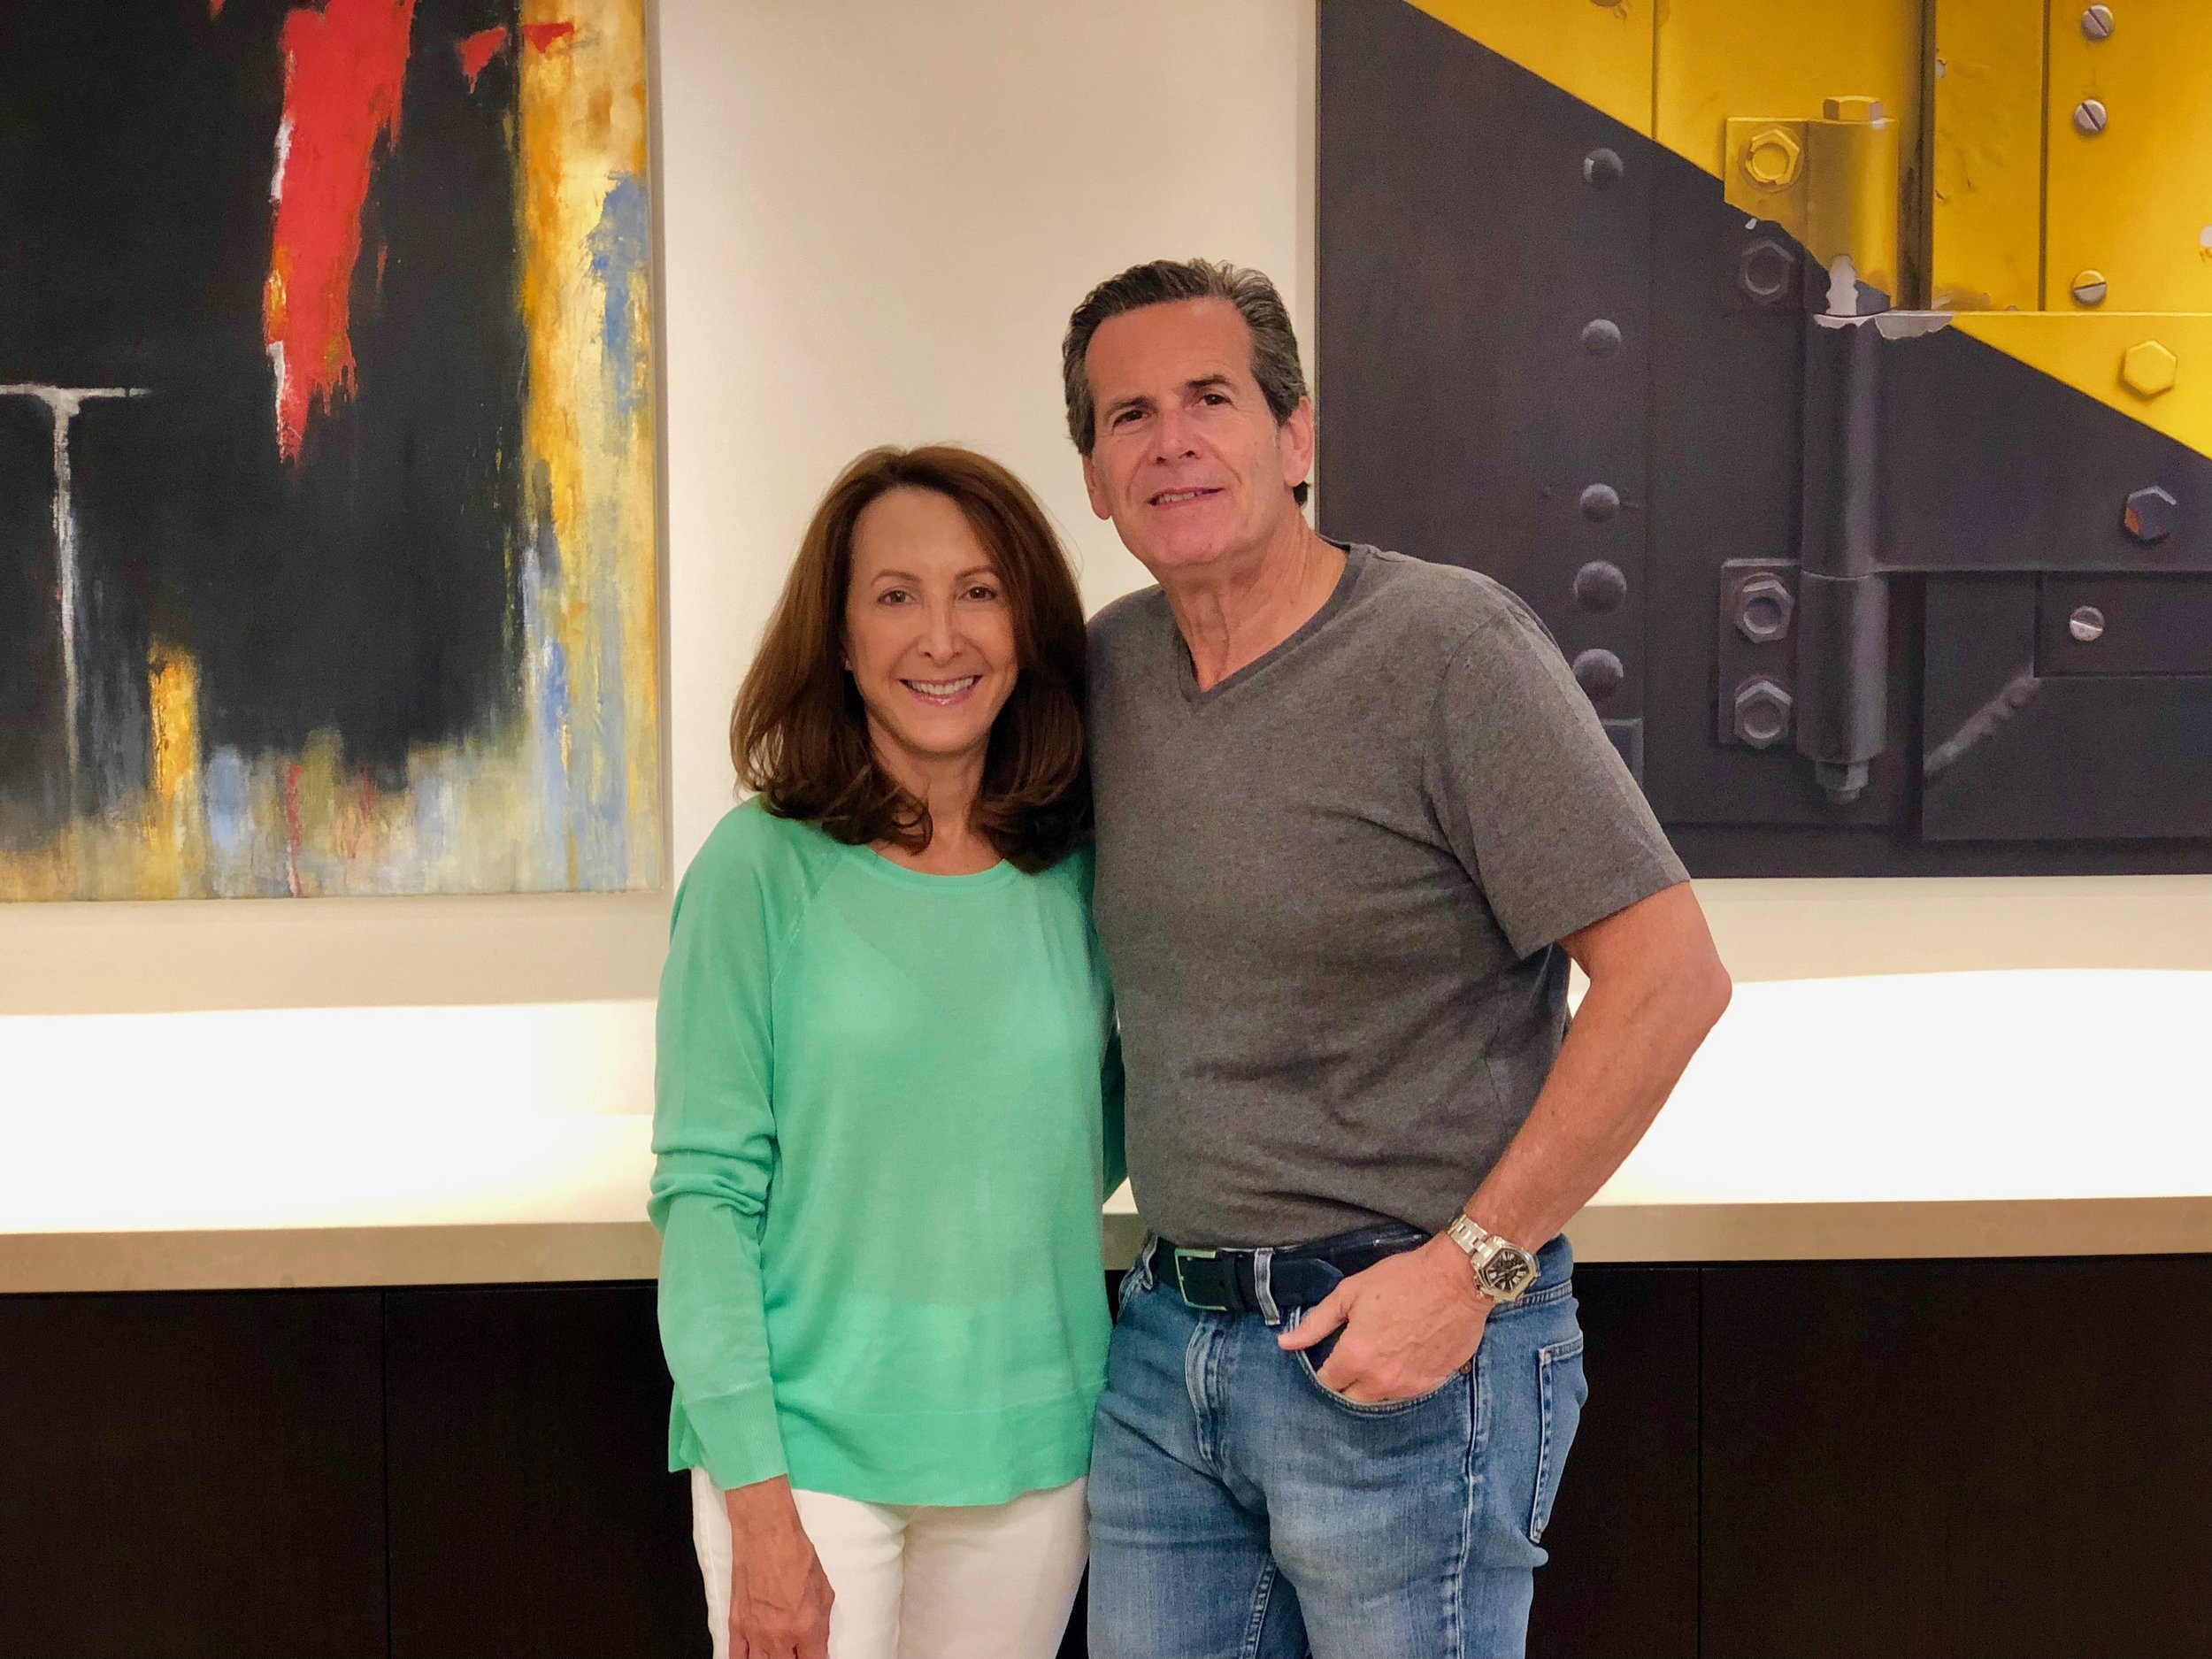 Collecting art has been a shared passion and hobby for my husband Bruce and I for over 25 years. So many amazing memories of art walks and gallery openings.